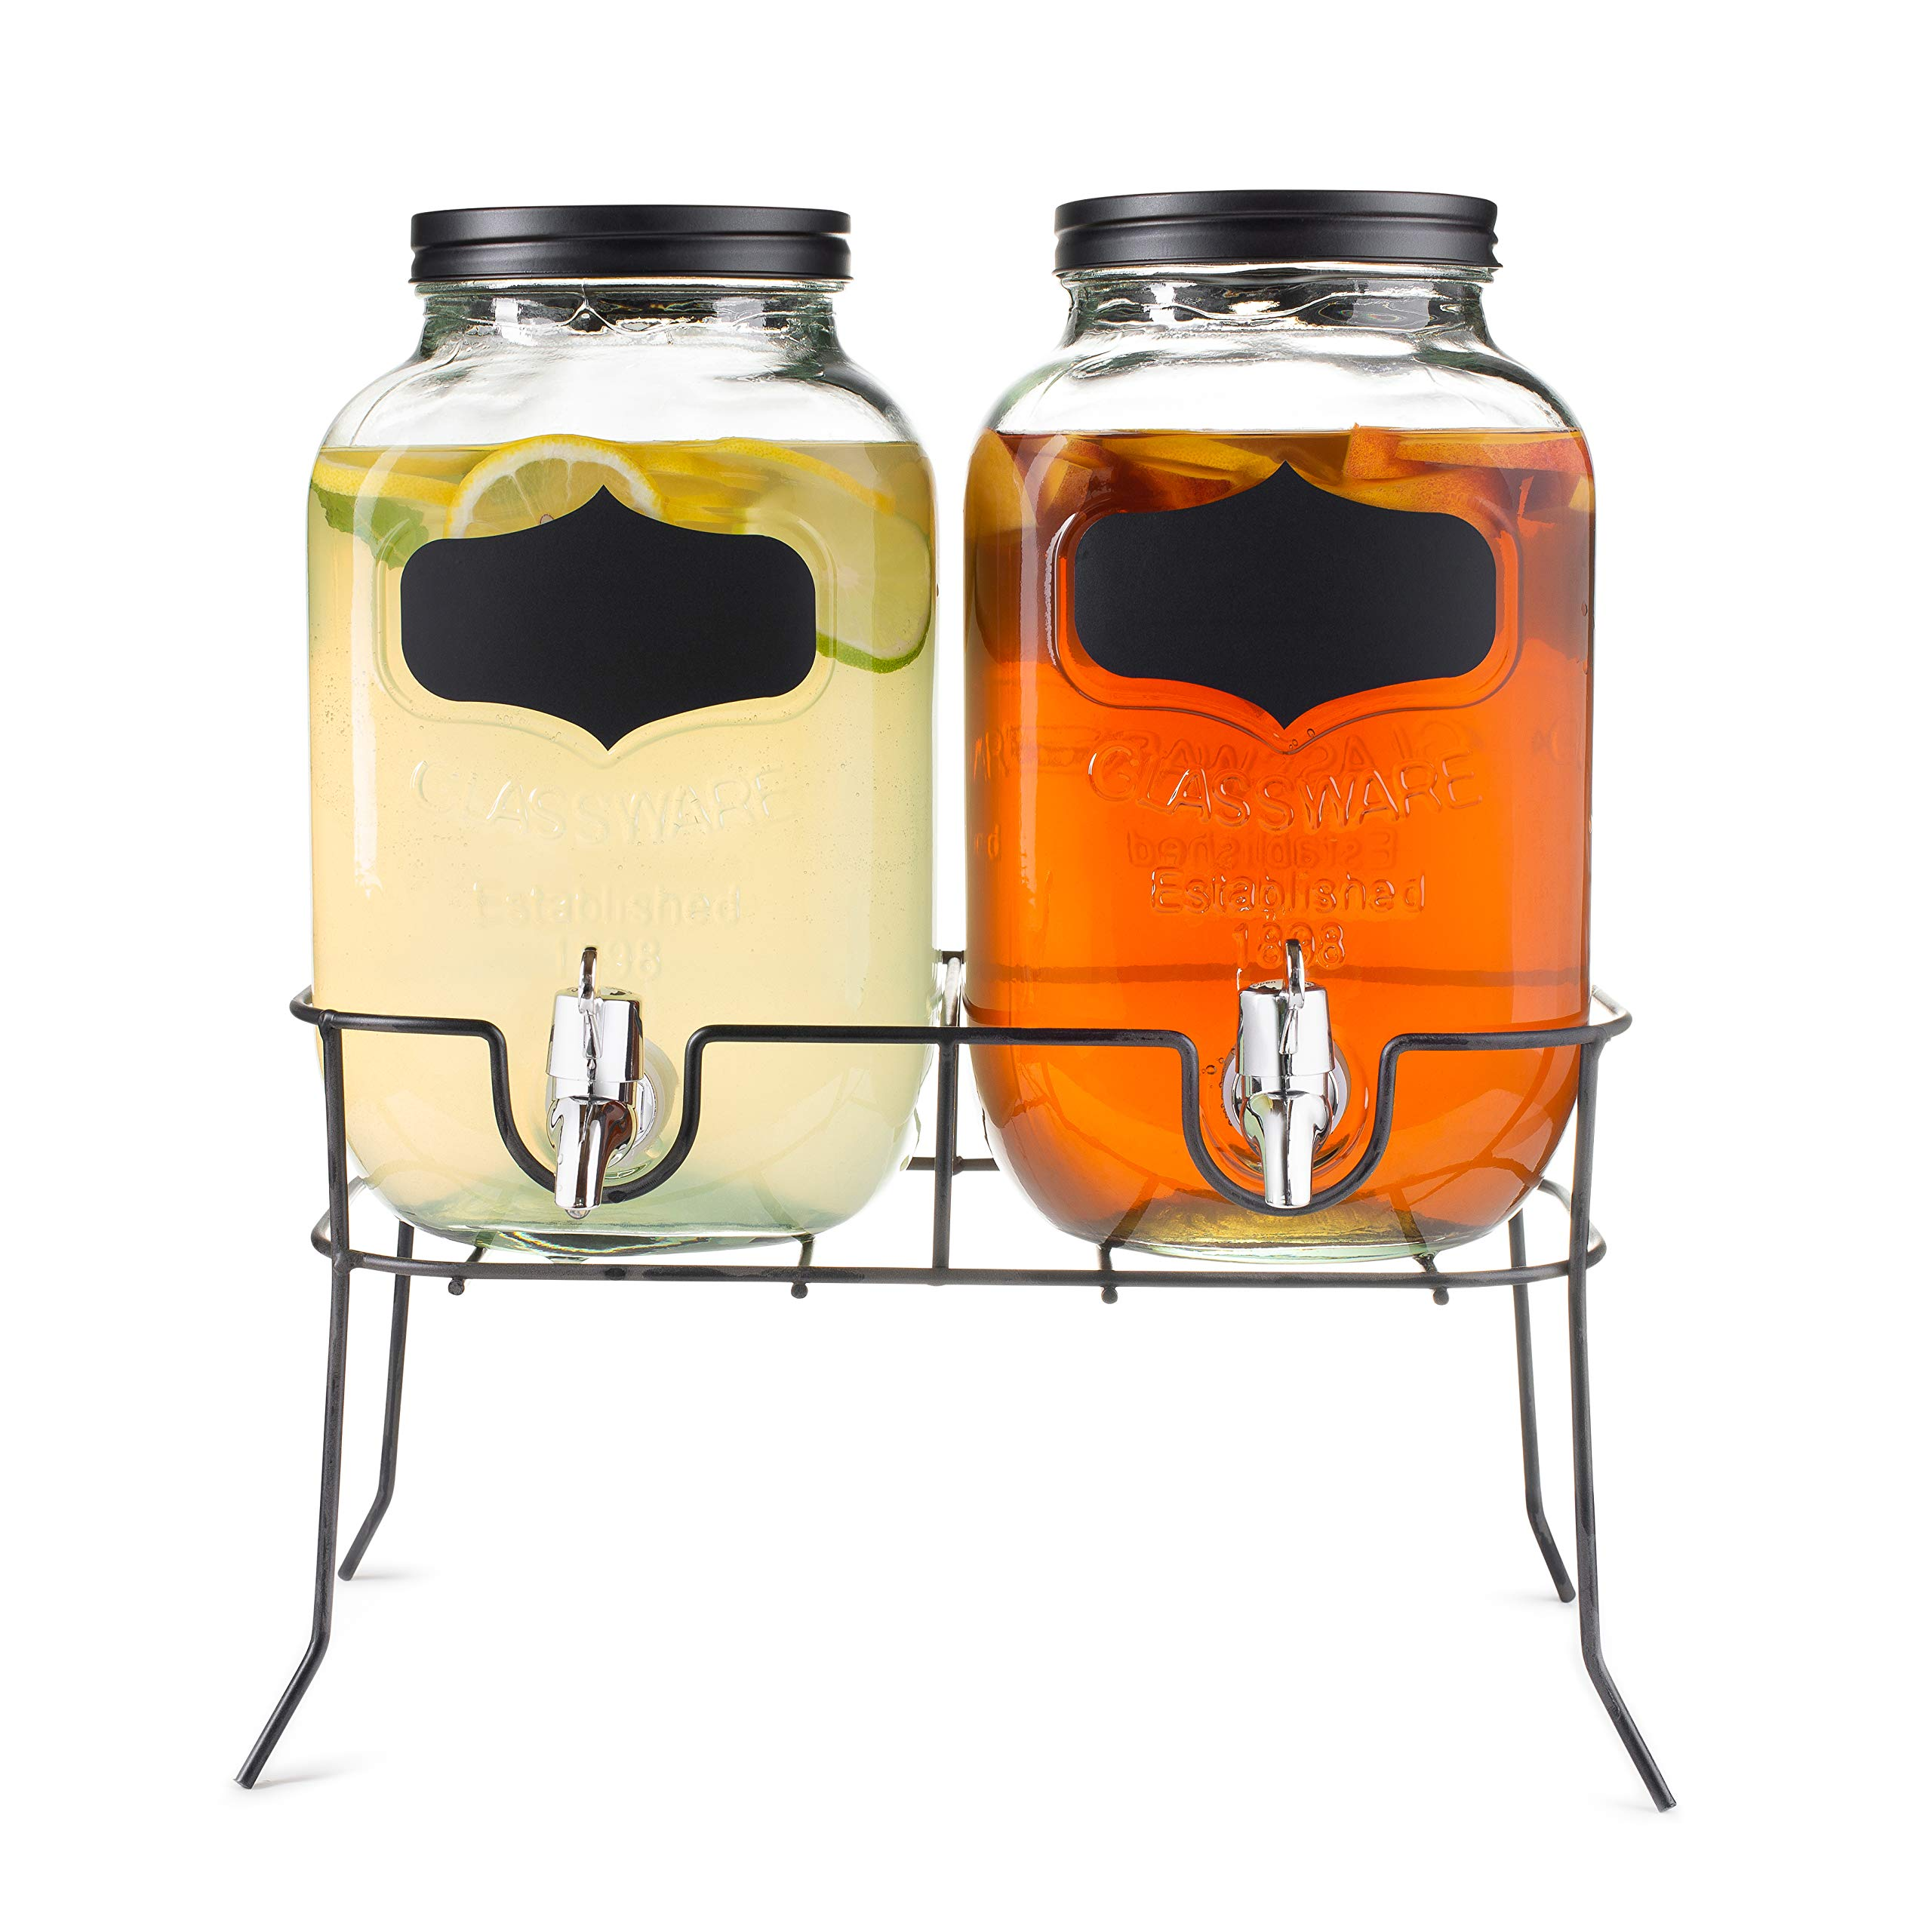 Dual Mason Jar Drink Dispensers with Metal Stand (4-Liters Each) Leakproof, Easy-Pull Spigots and Screw-On Lids Clear, Heavy-Duty Glass Chalkboard Sticker Labels